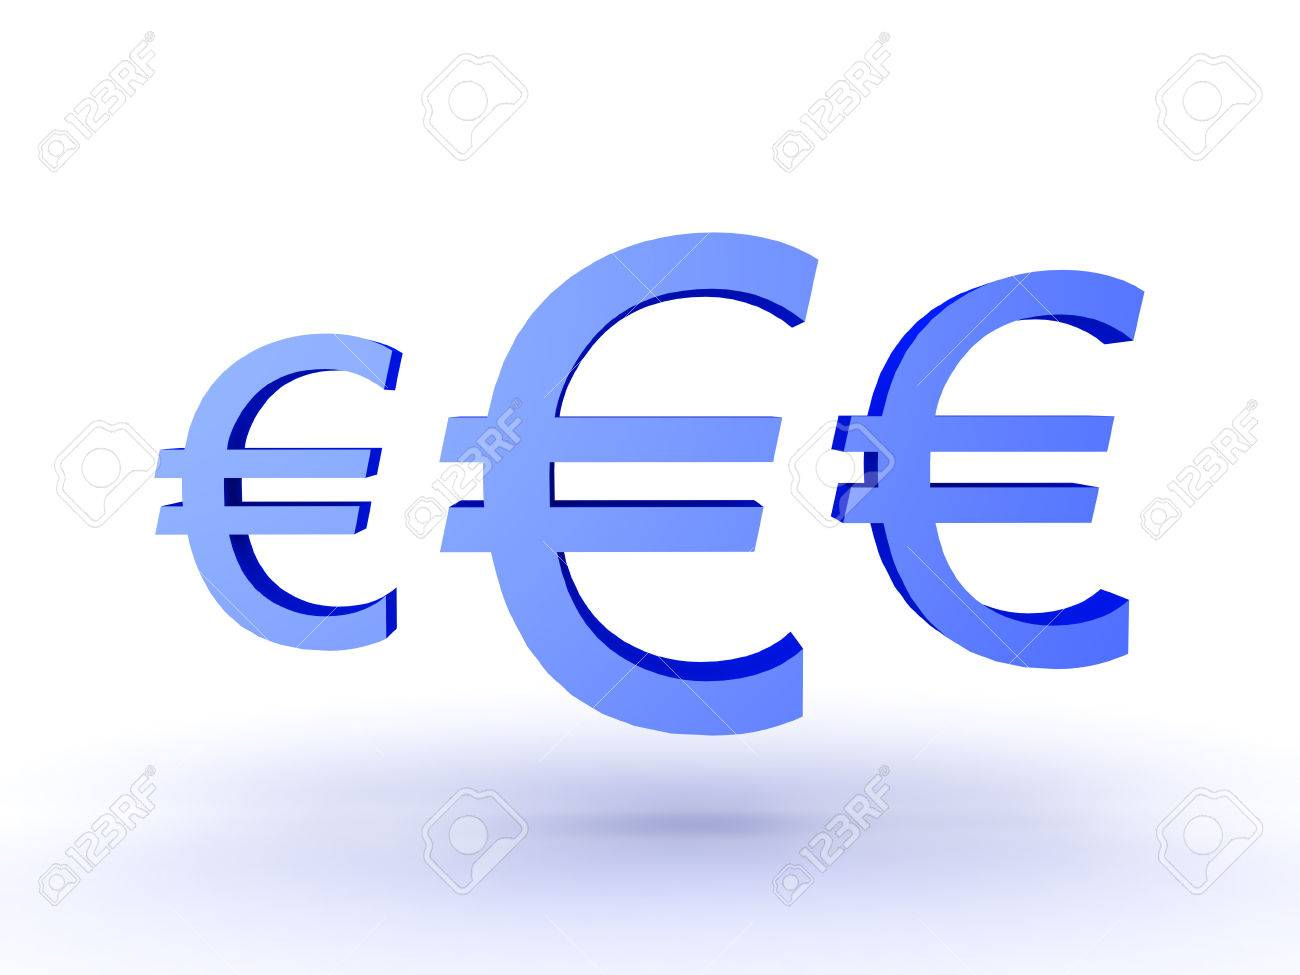 3d Illustration Of Three Blue Euro Currency Symbols Isolated